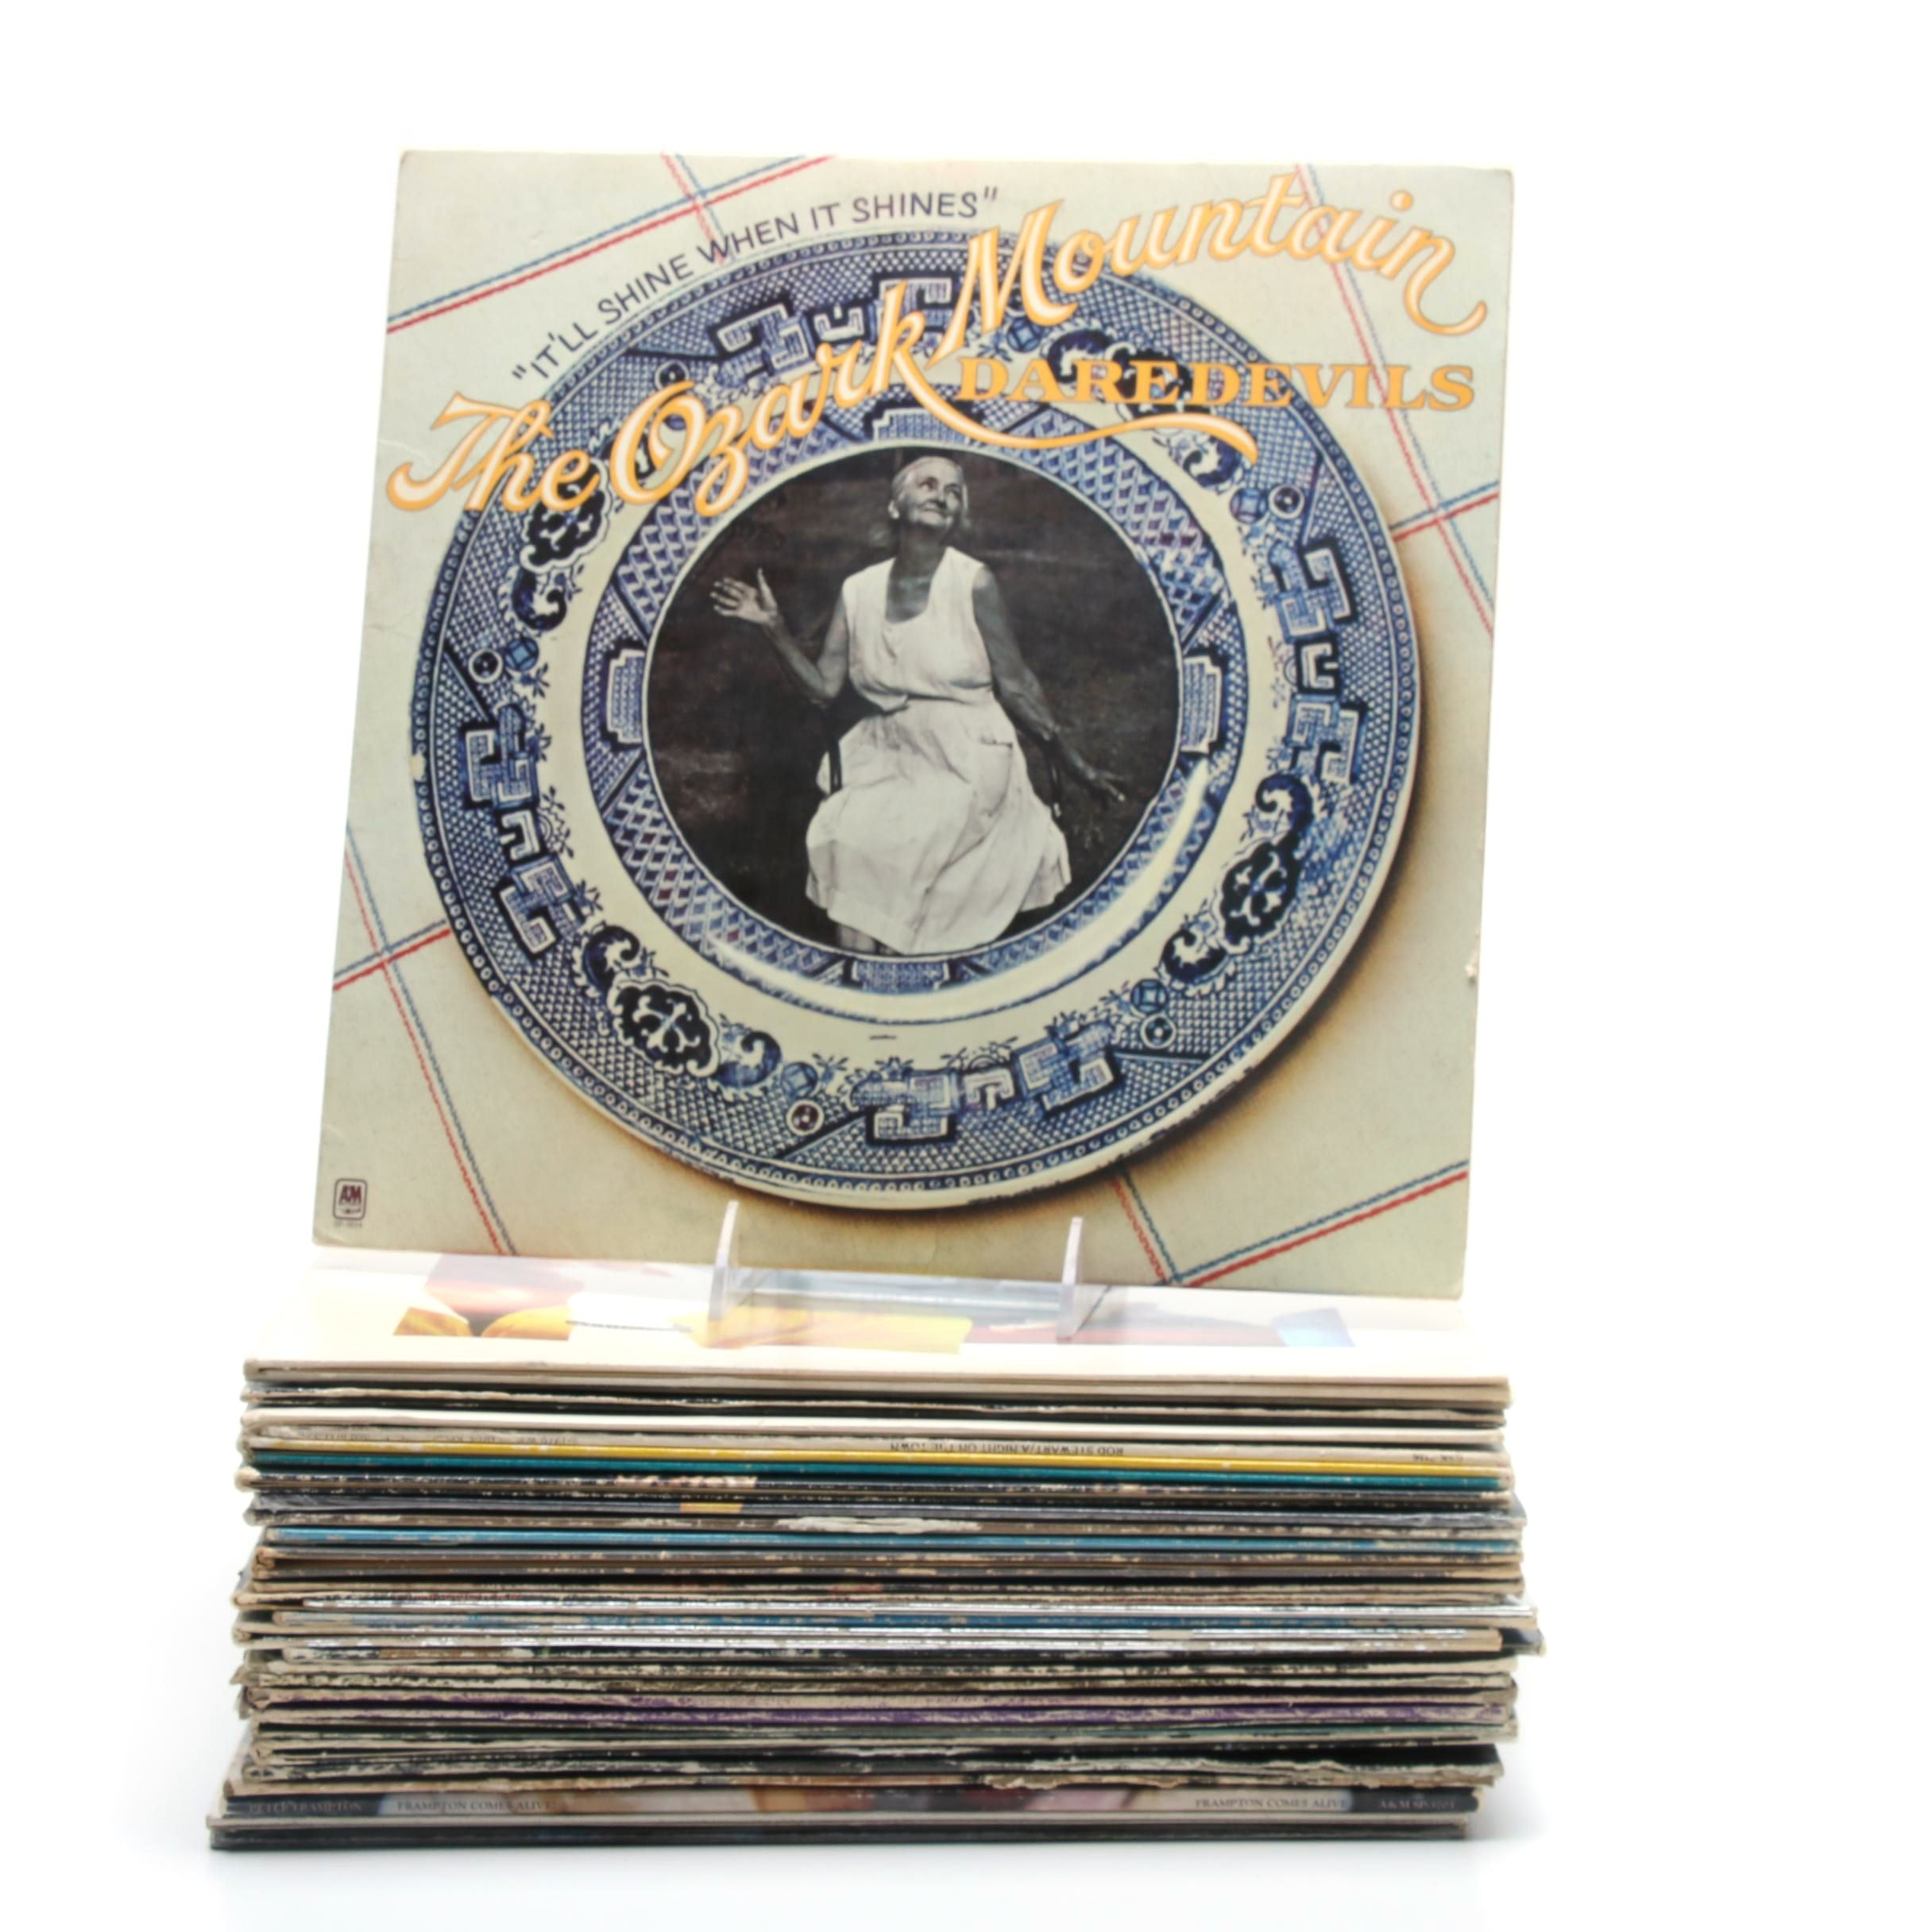 1970s Rock Records Including Rod Stewart, Rush, Jefferson Airplane and More